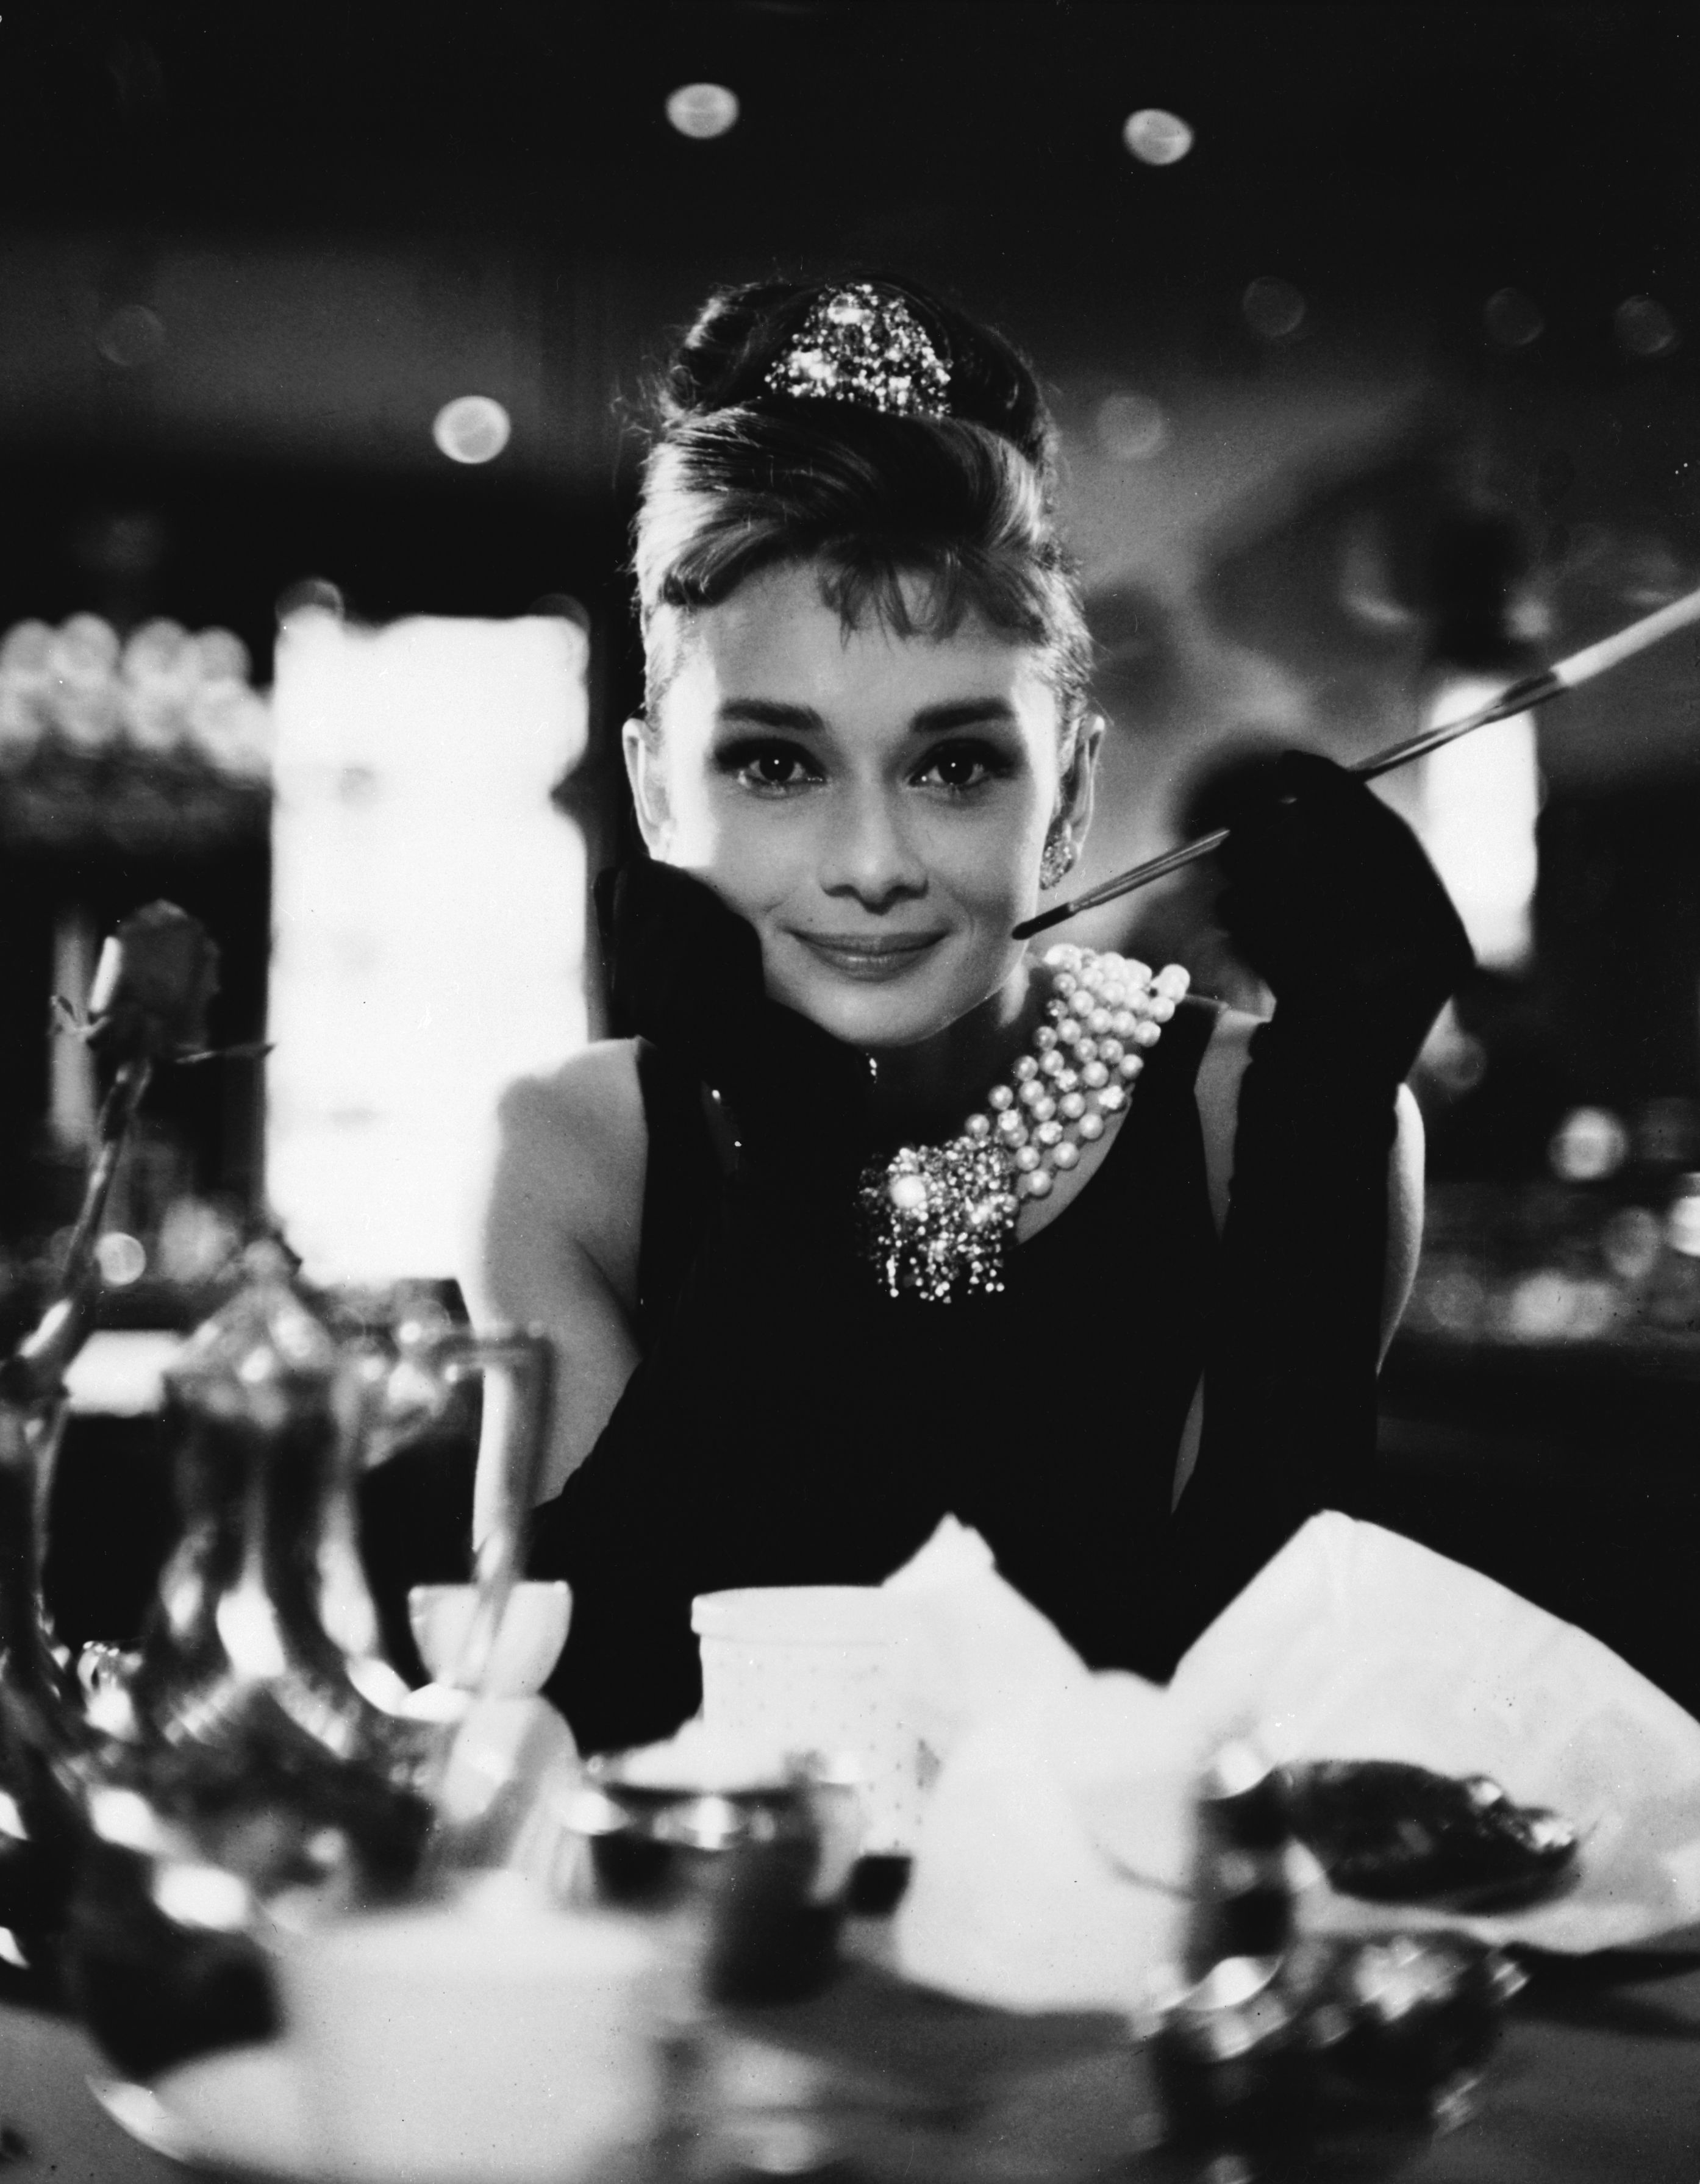 Audrey Hepburn as Holly Golightly in the 1961 film, 'Breakfast at Tiffany's'   Source: Getty Images